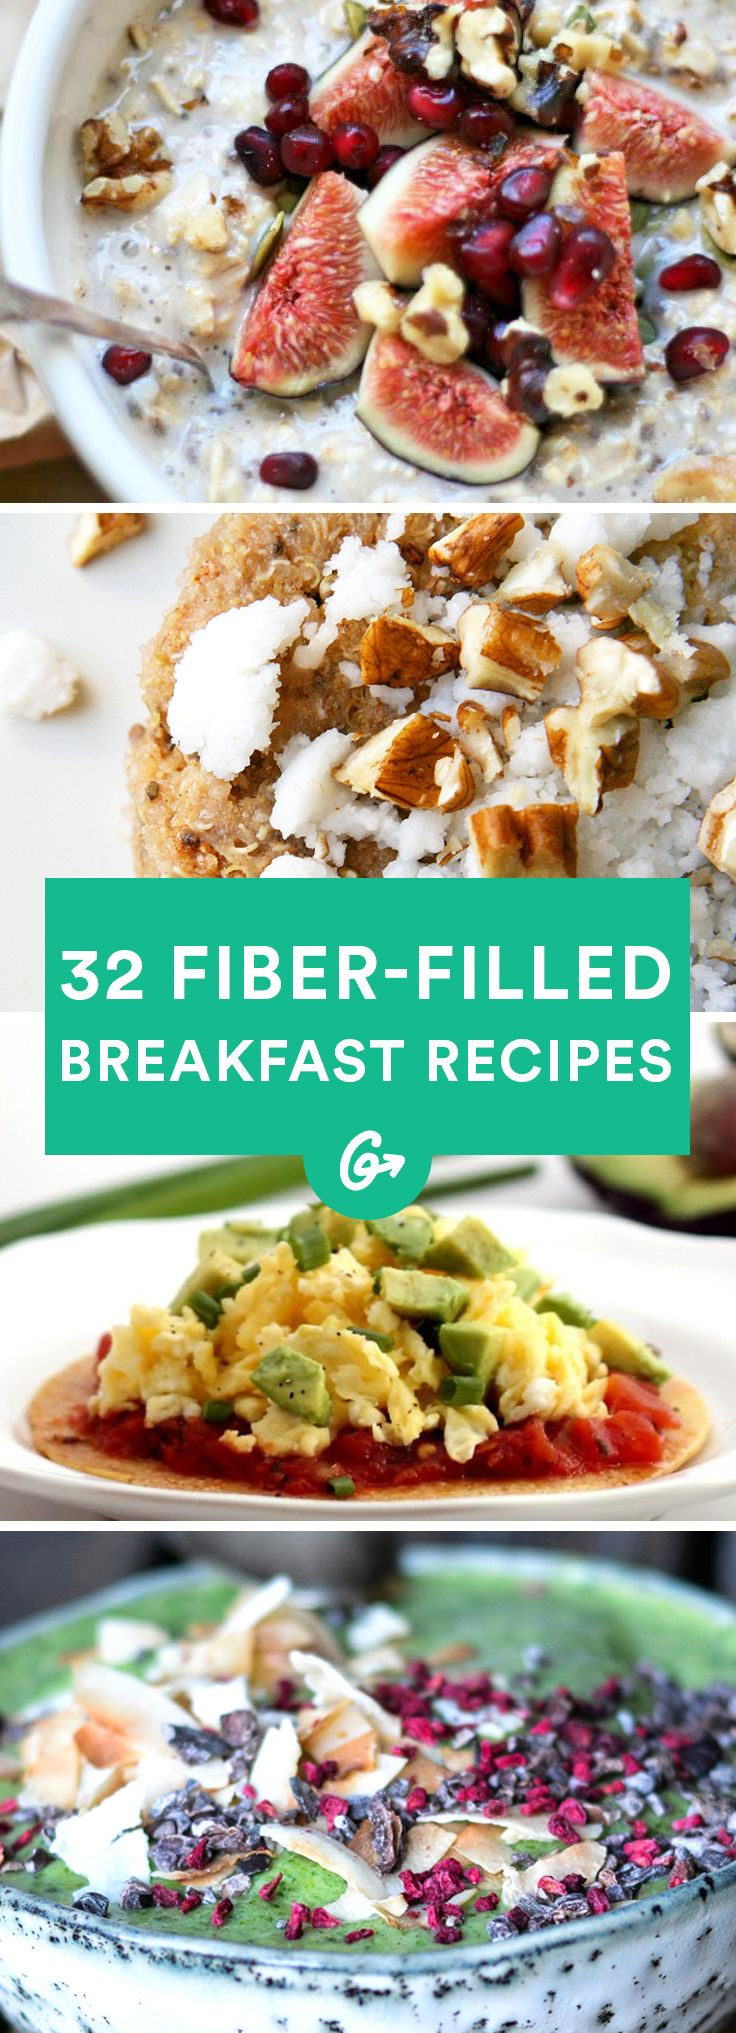 High Fiber Diets Recipes  Best 25 High fiber breakfast ideas on Pinterest